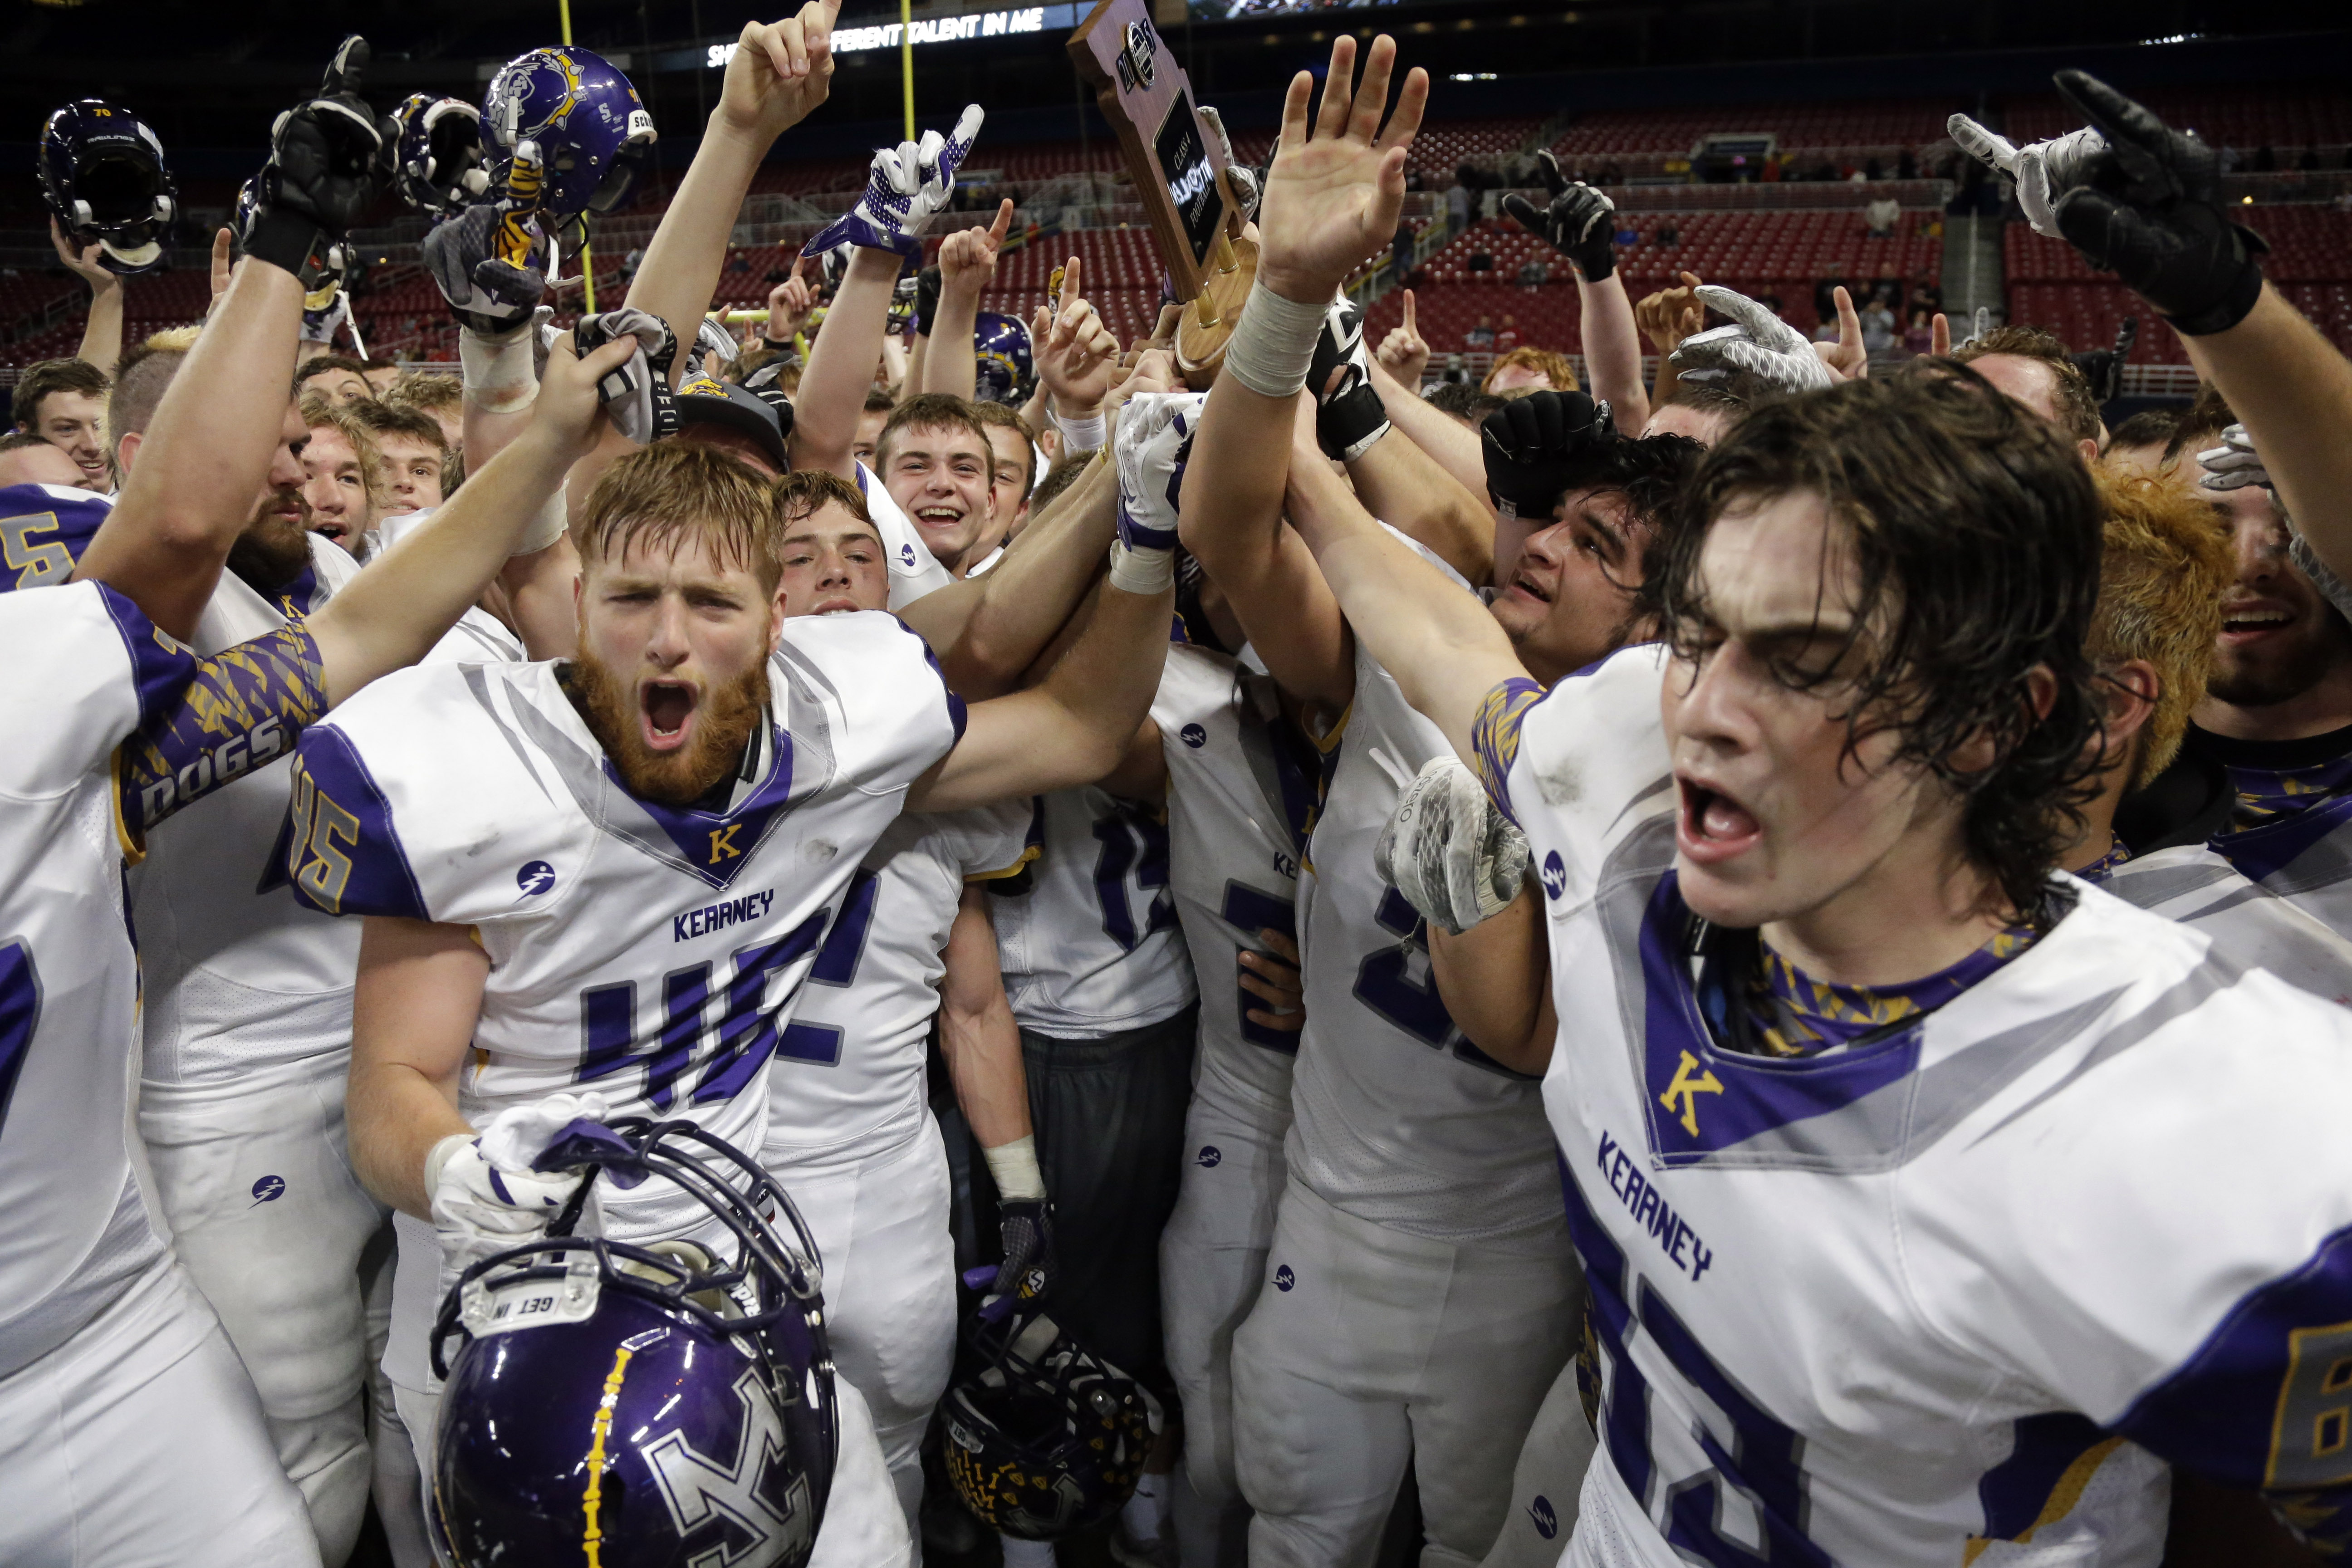 Members of the Kearney Bulldogs celebrate after defeating Webb City in the Missouri Class 4 state high school football championship (Photo: Jeff Roberson, Associated Press)